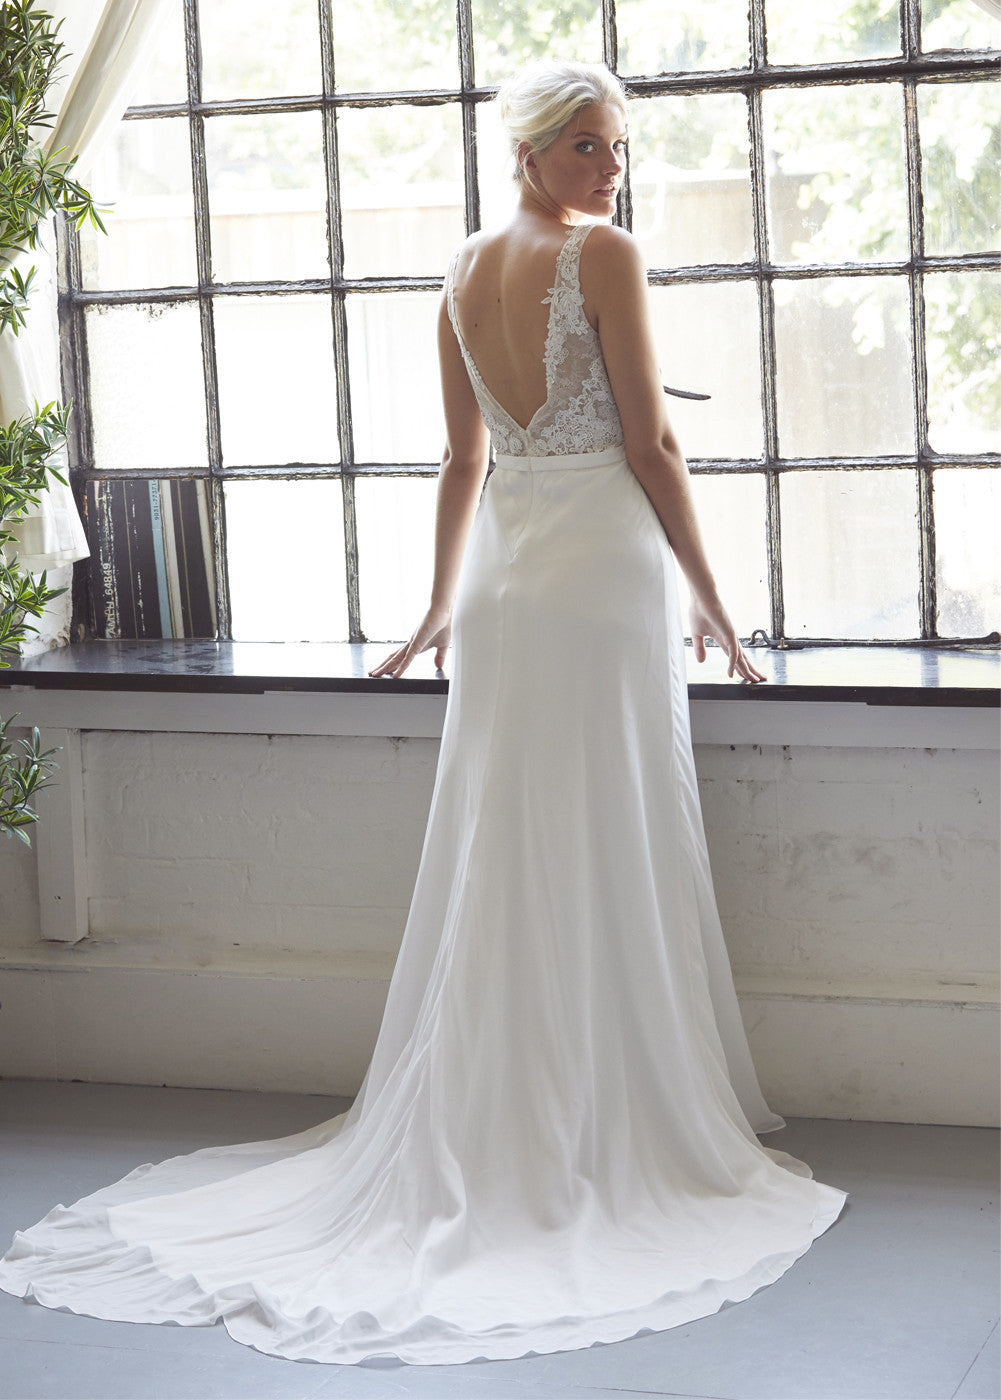 Chiffon Wedding Dress with a See-through Lace Bodice – Aneberry